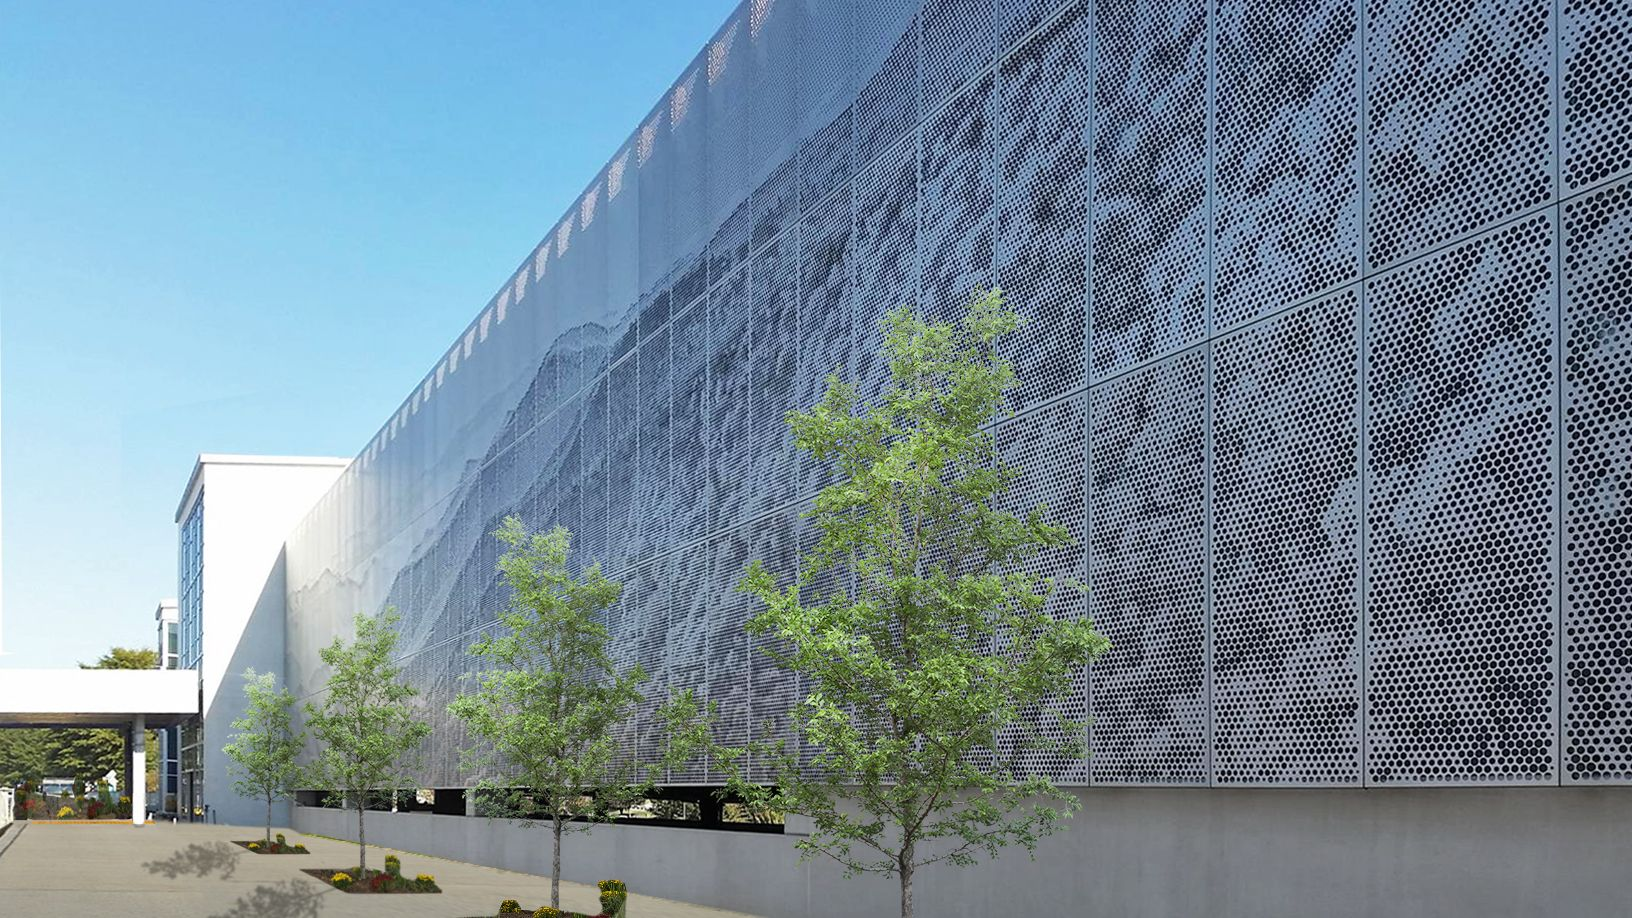 Perforated Imaging Architectural Perforated Metal Images